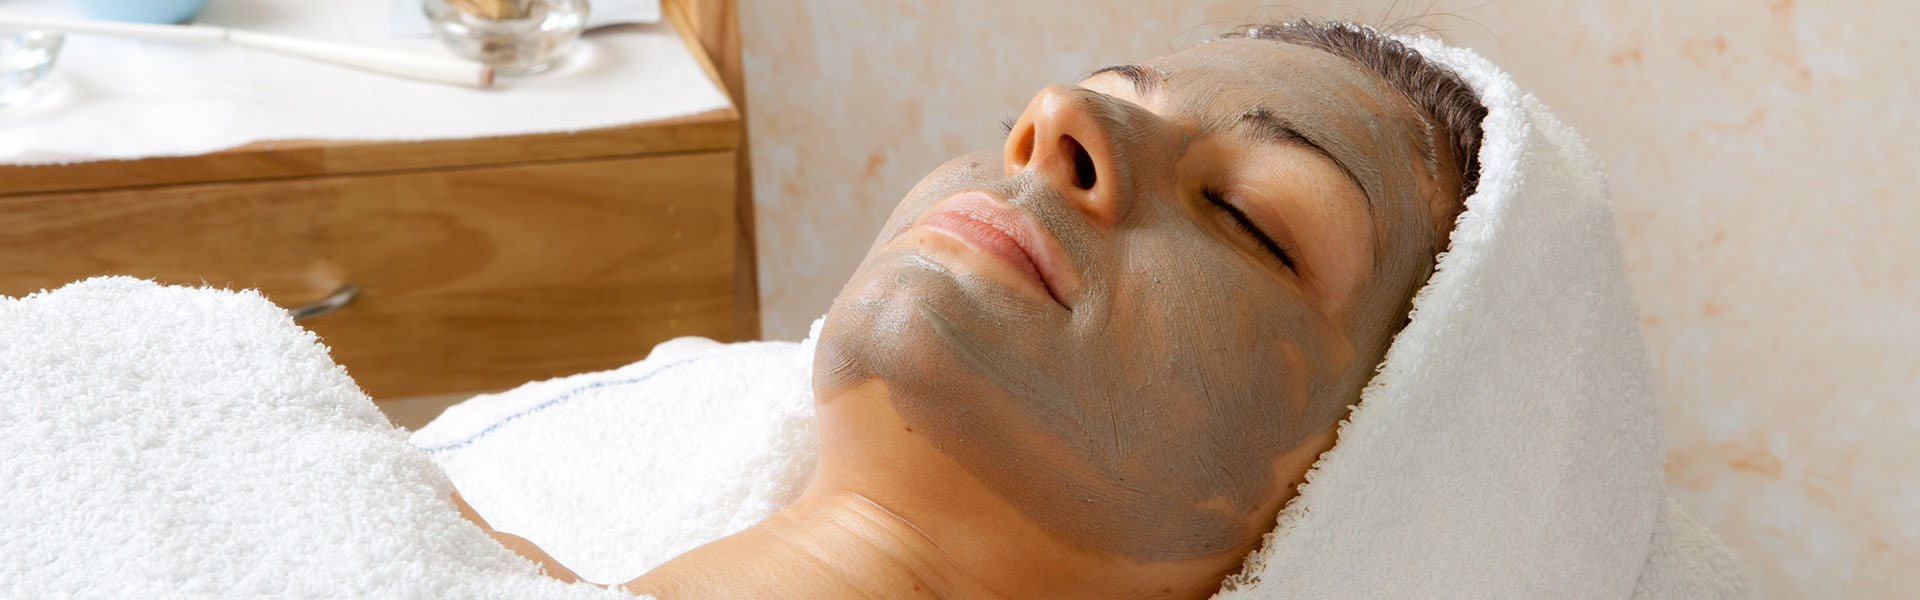 Facials, Chemical Peels, Micro-Needling and much more...